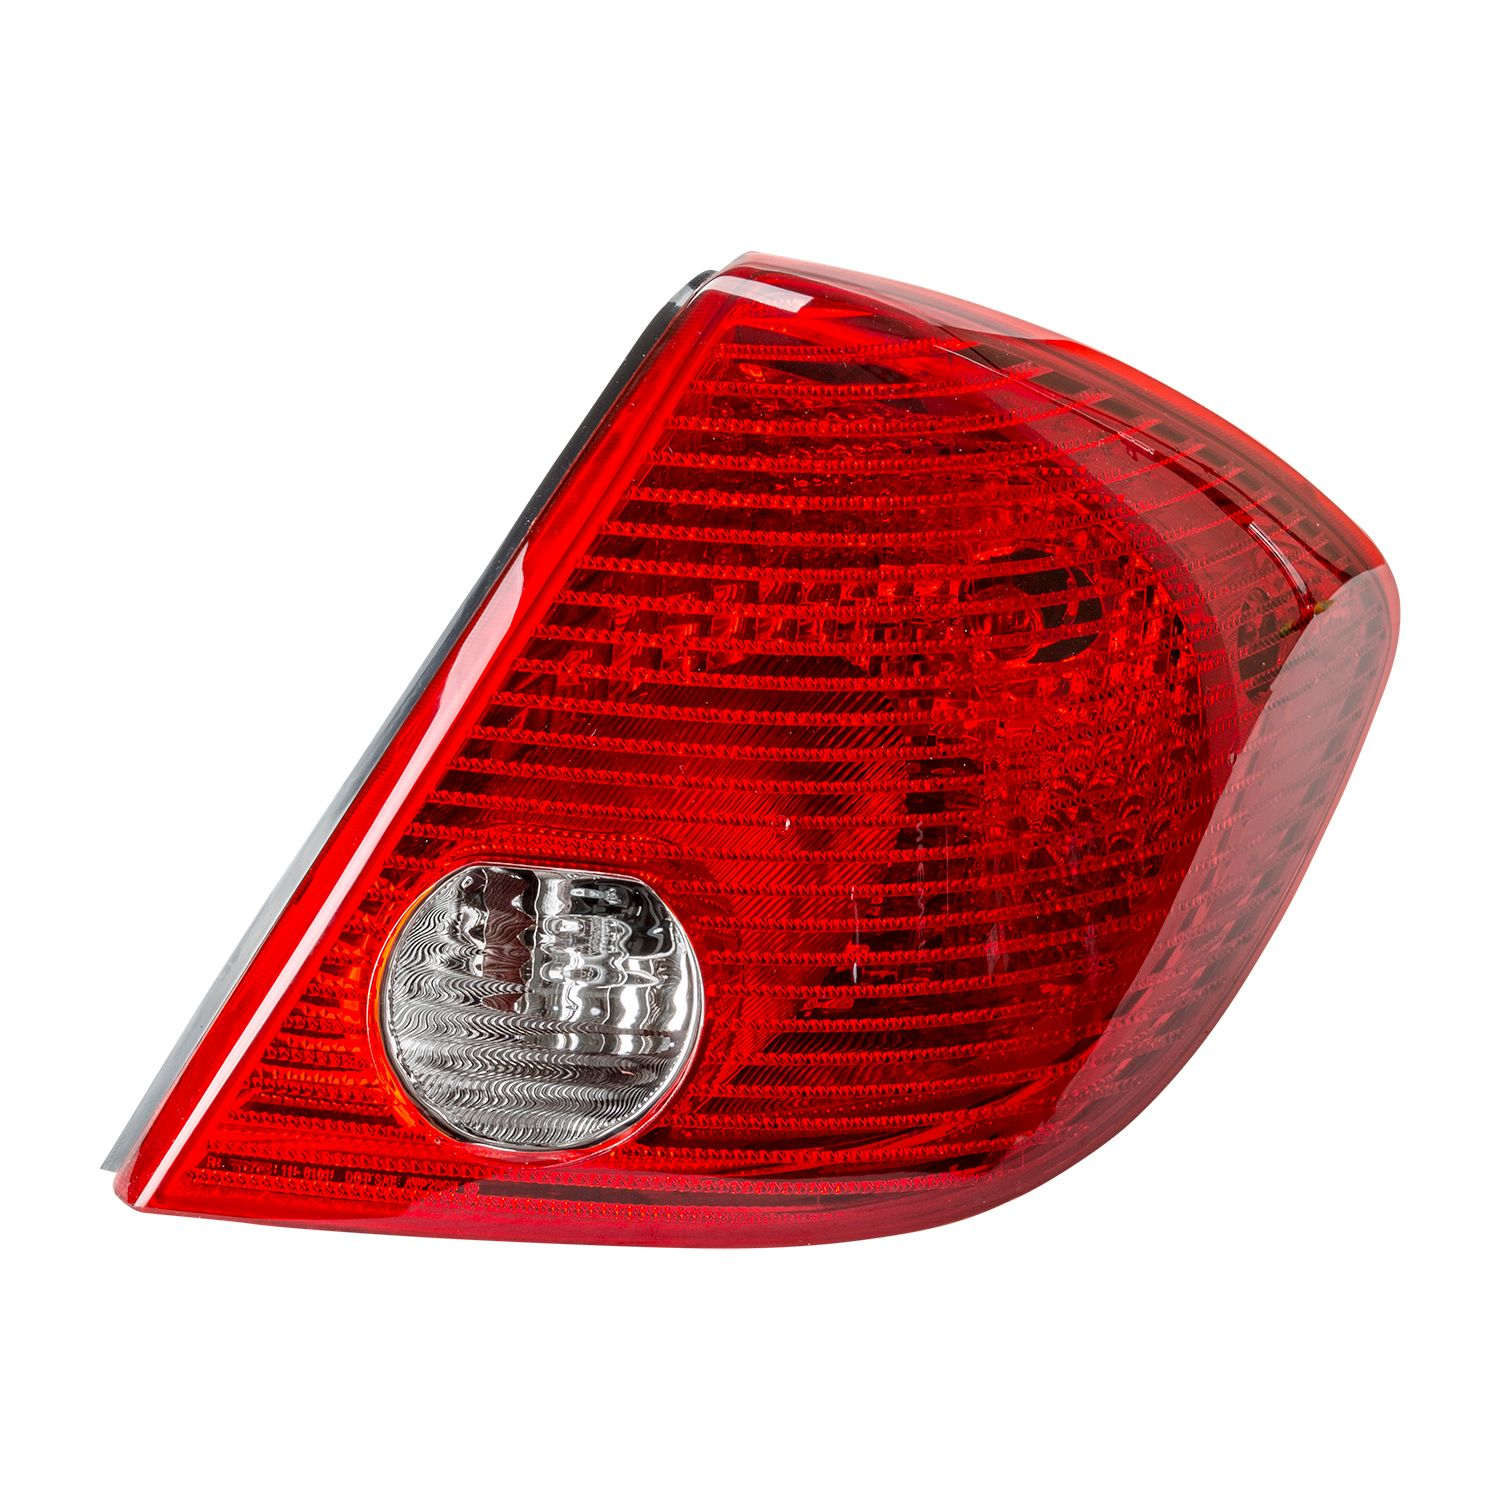 TYC 11-6101-00-1 Right Side Tail Light Assembly for 05-10 Pontiac G6 GM2801201